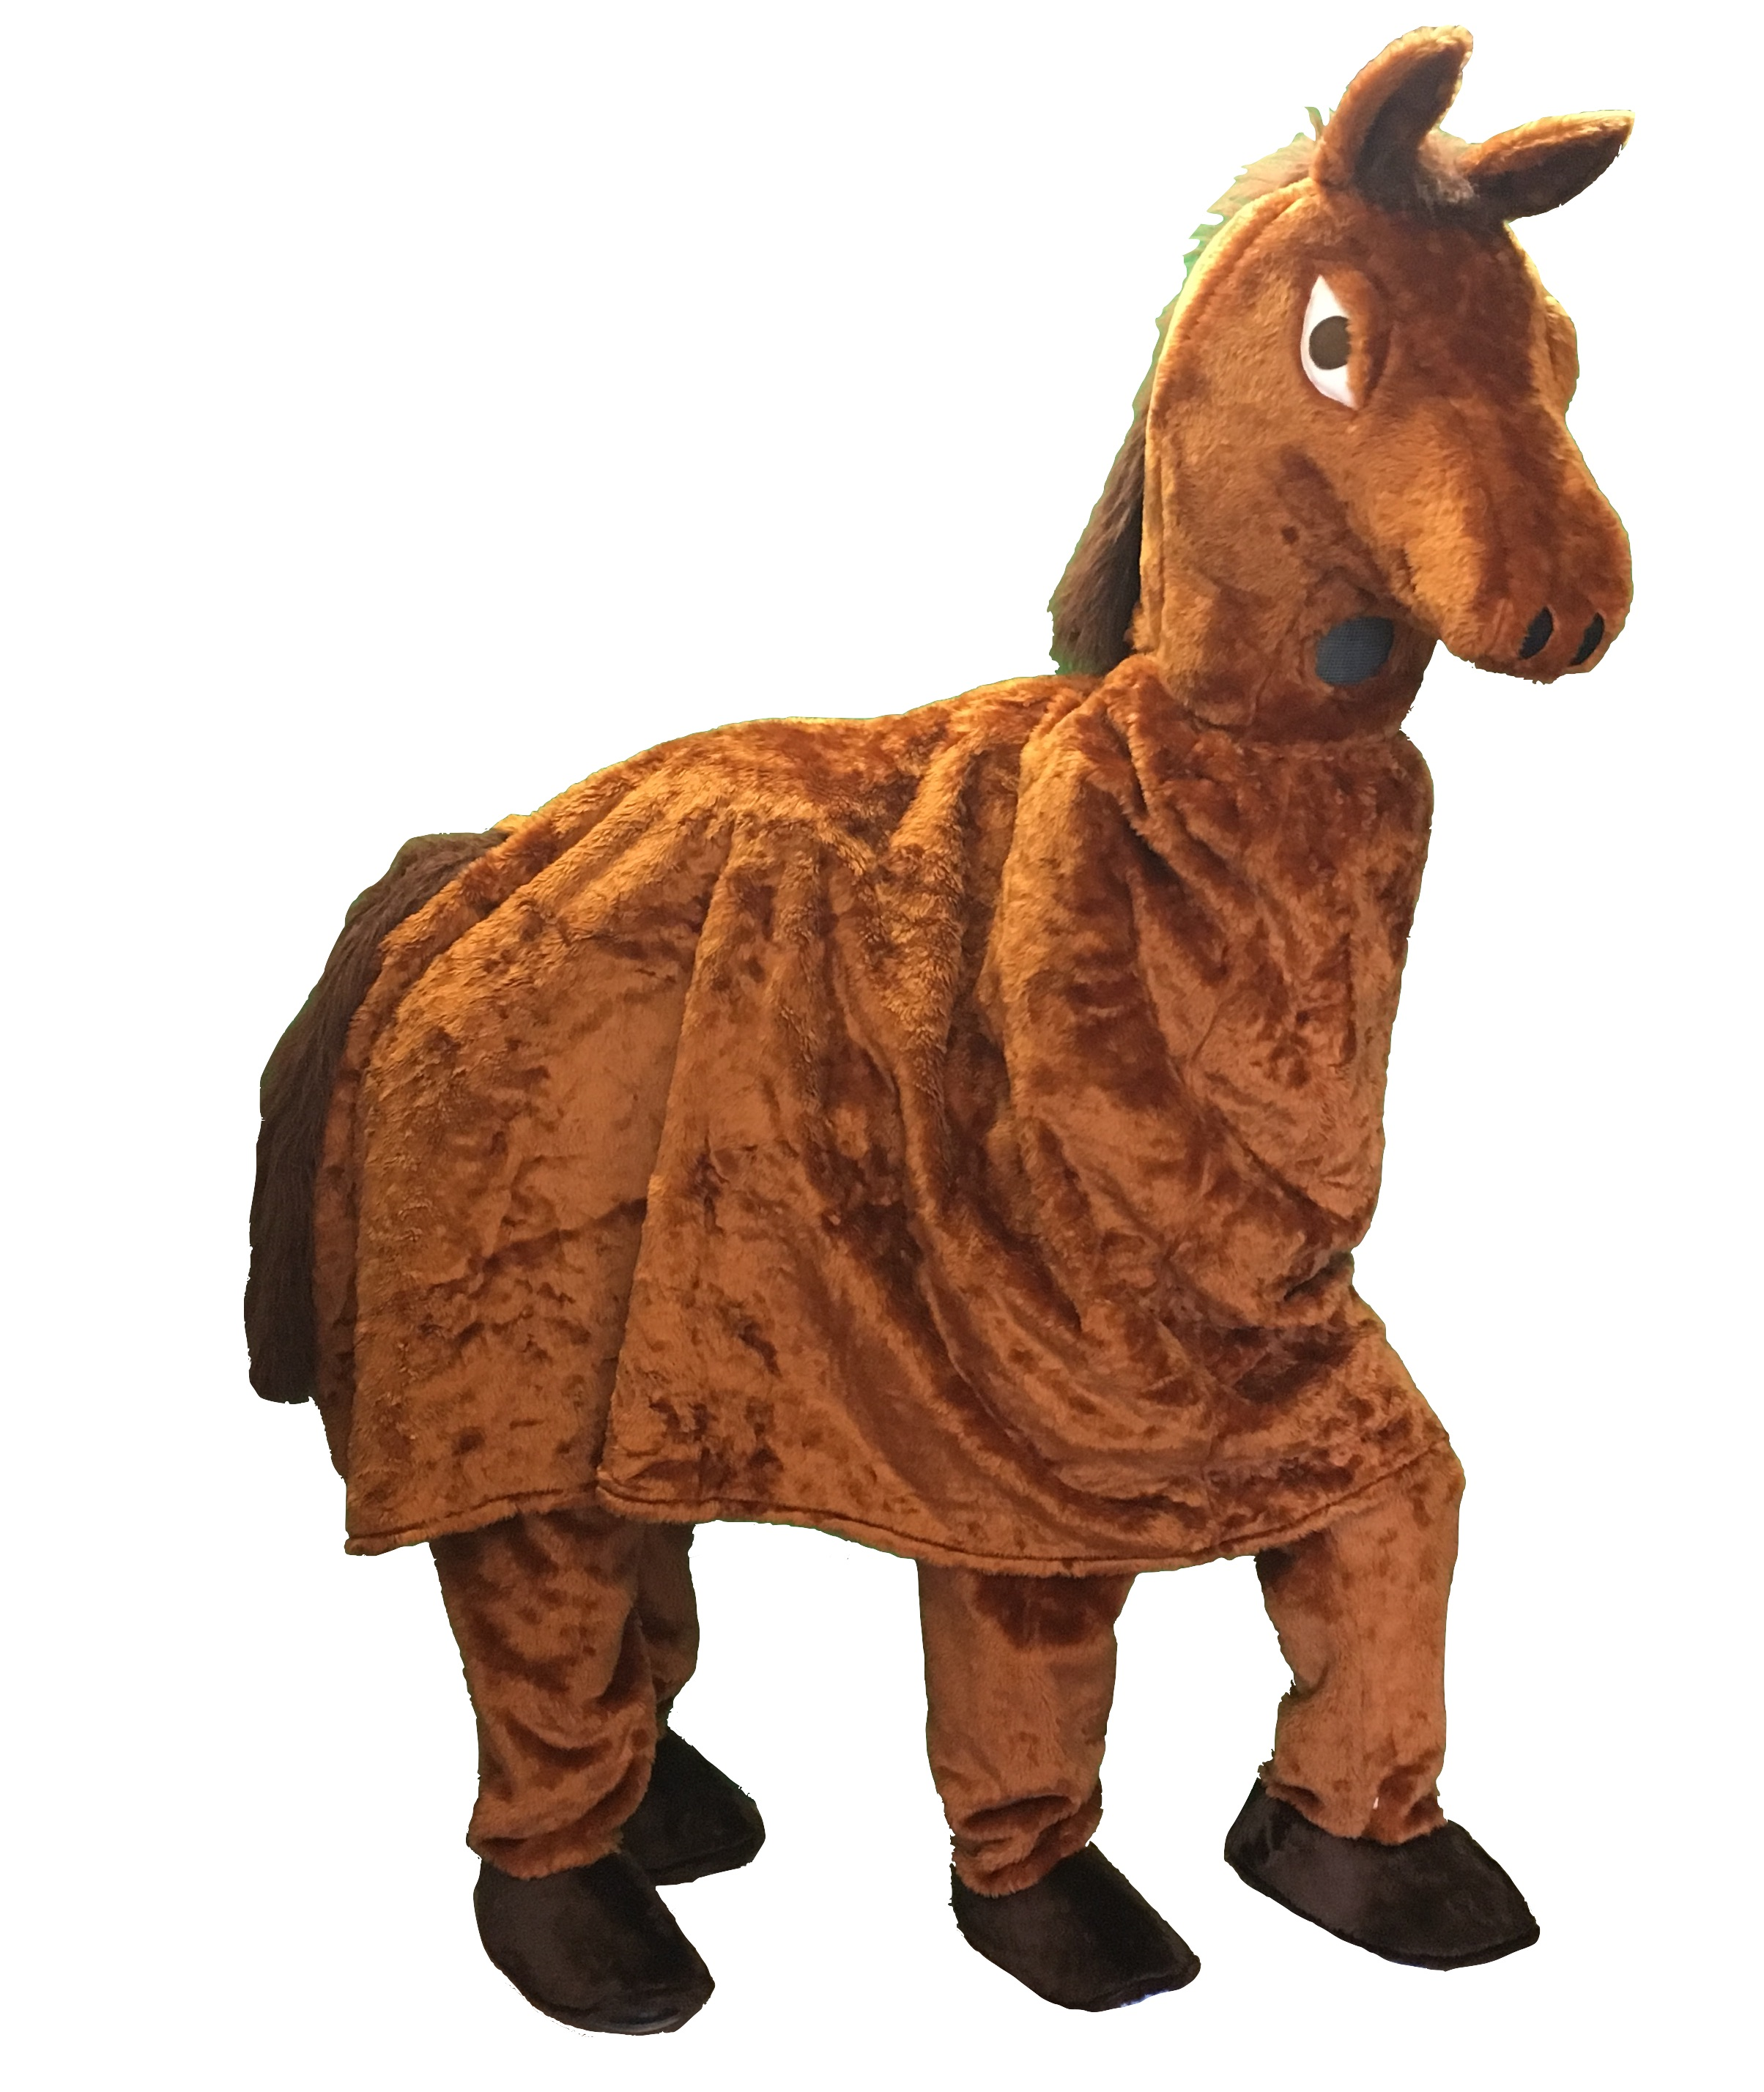 Pantomime Horse Costume 2 Person Horse Costume Chestnut